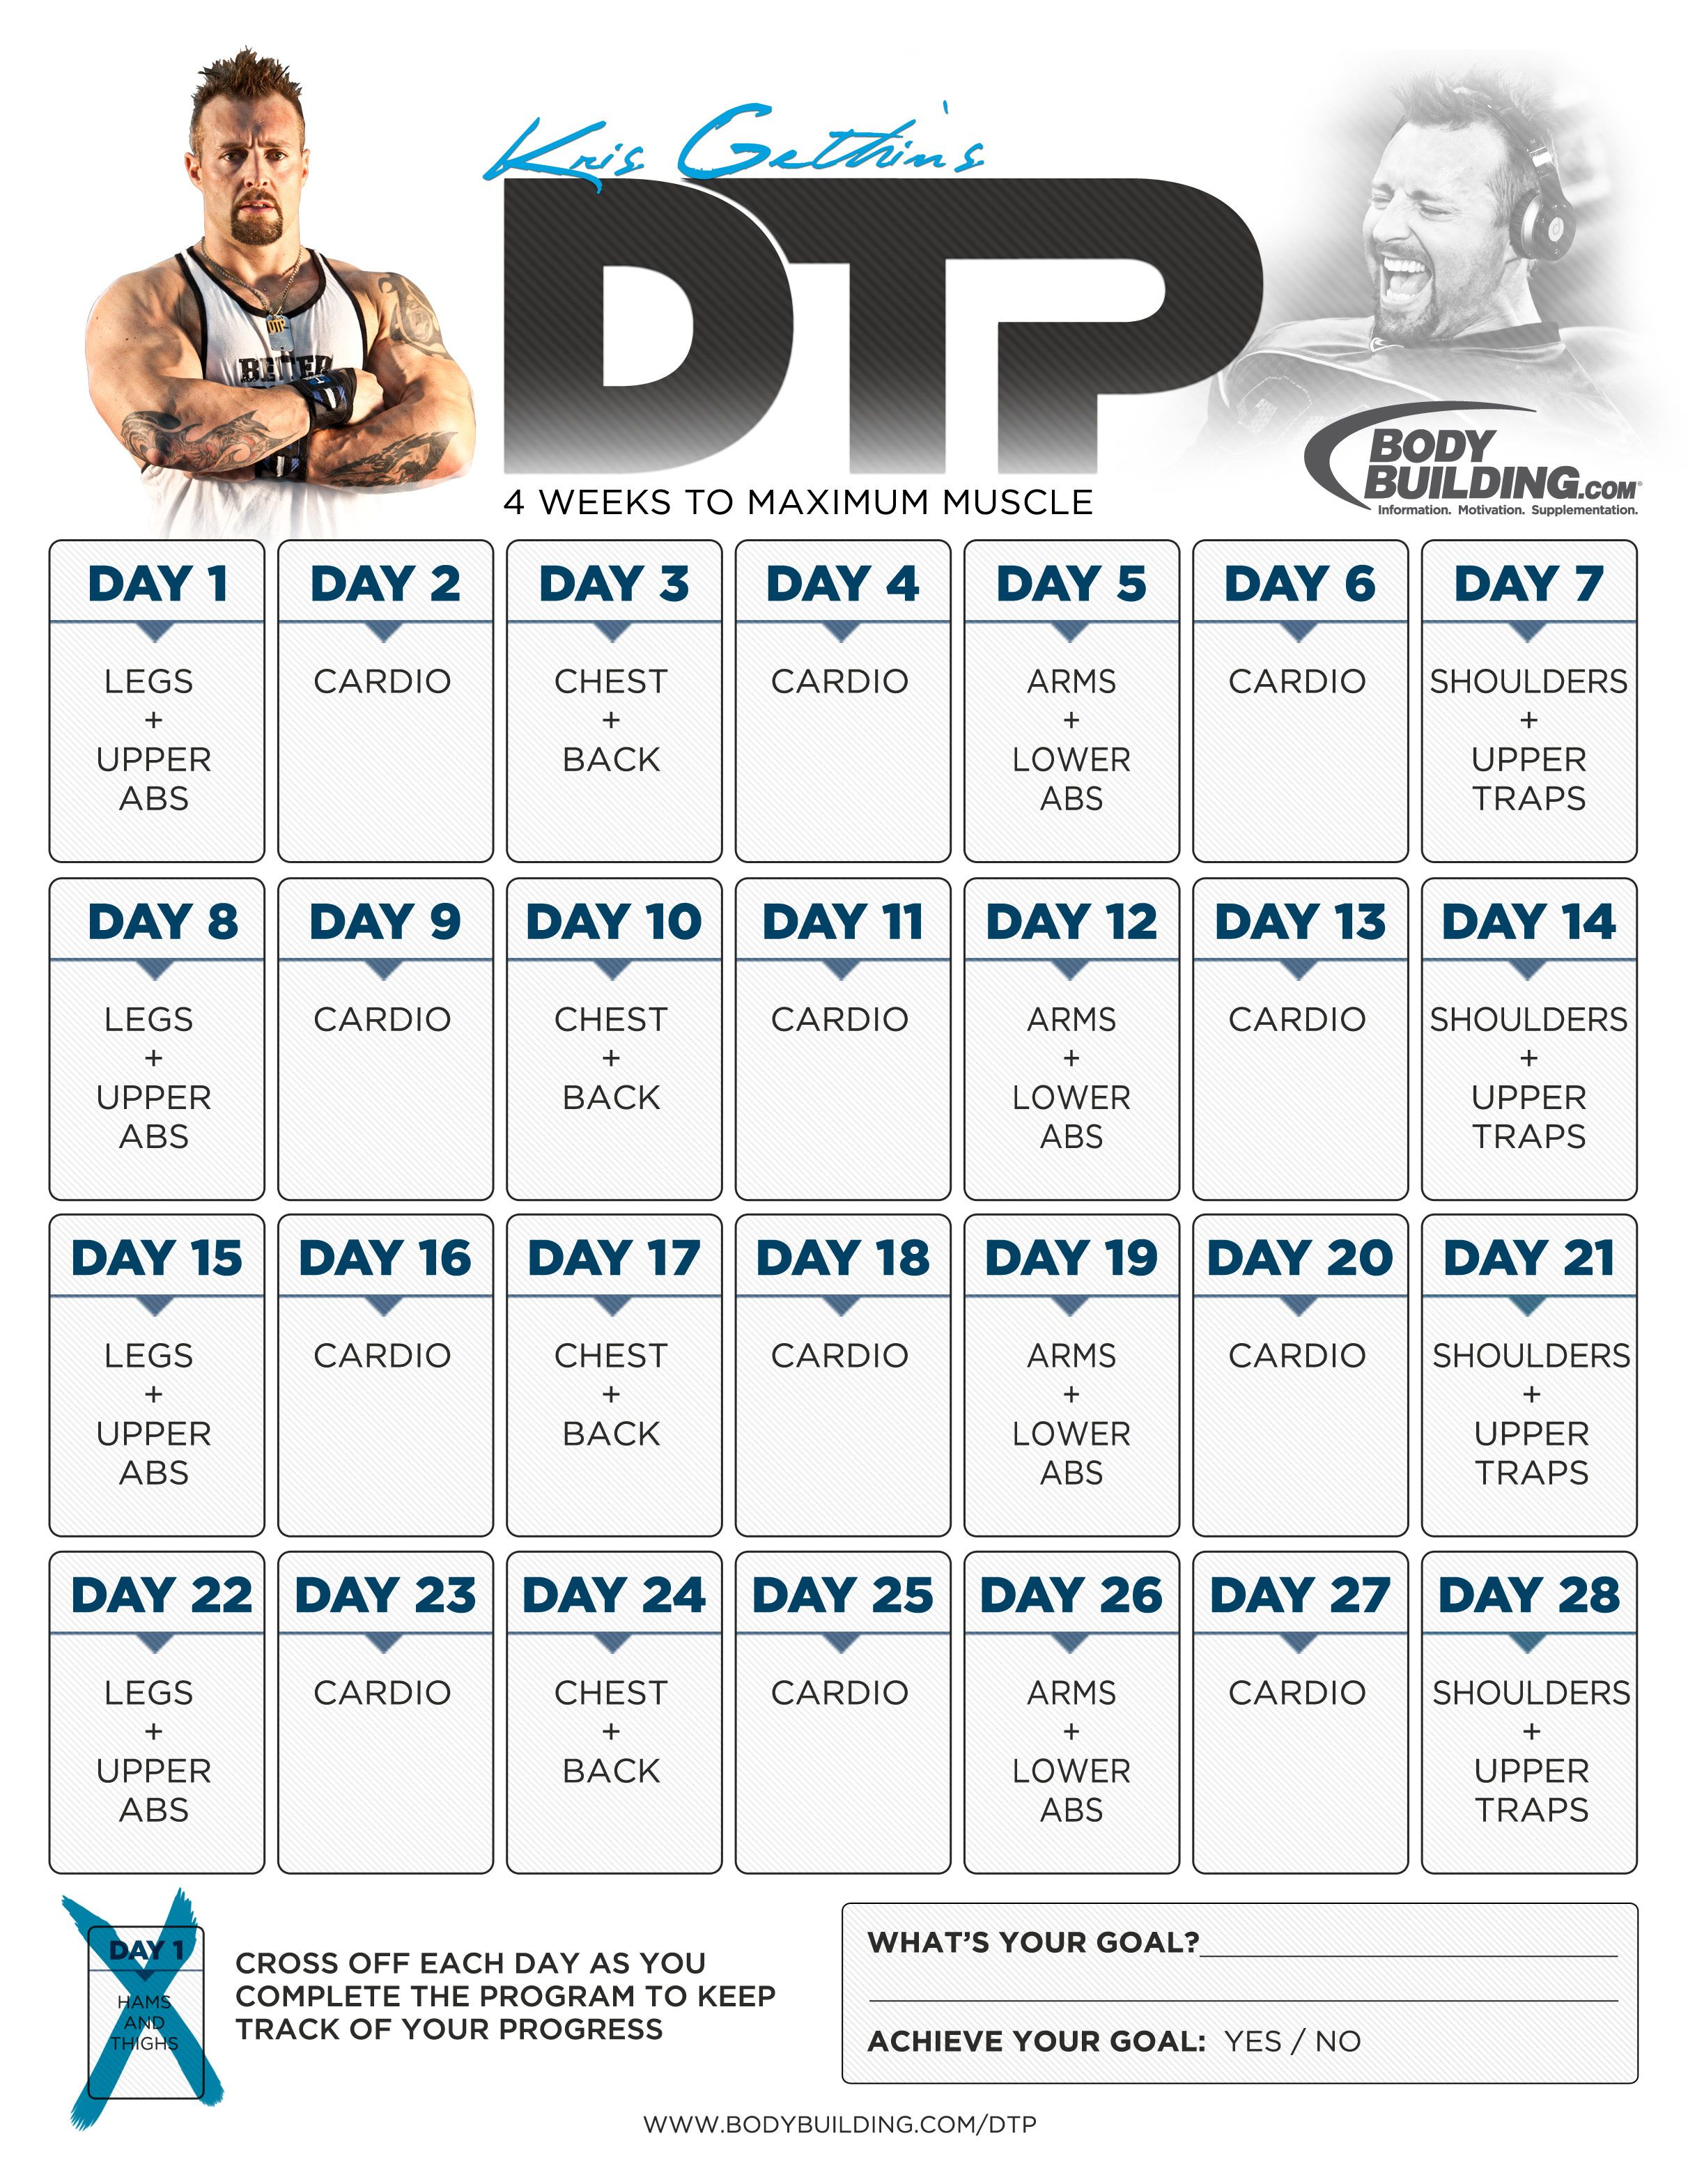 Gym Workout Chart For Chest For Men Kris Gethin 39s Dtp 4 Weeks To Maximum Muscle Fitness